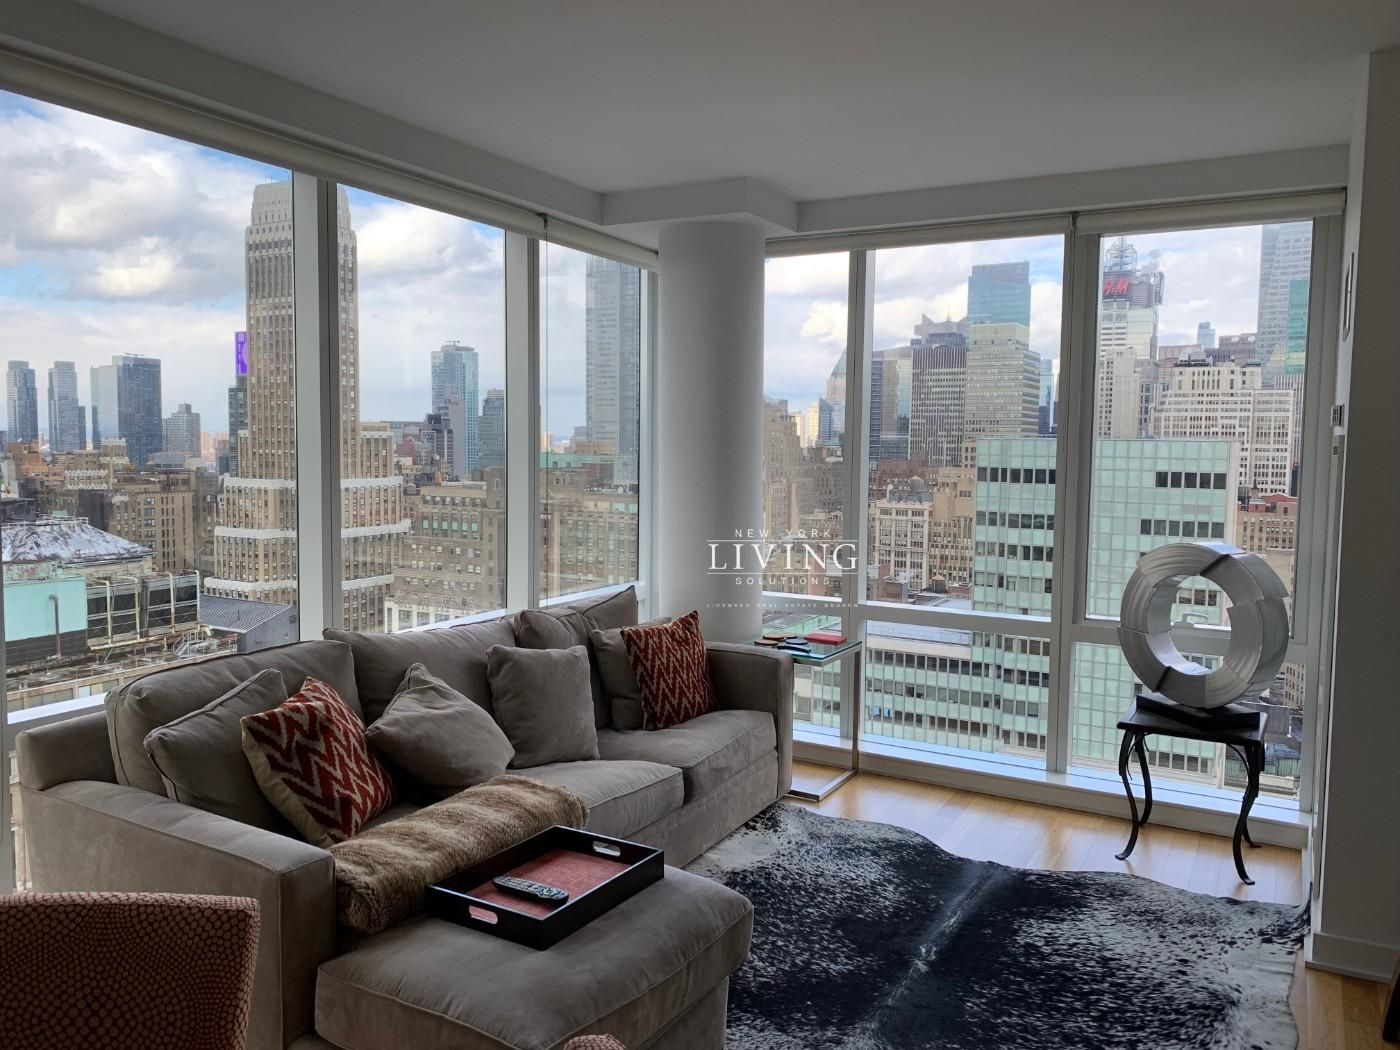 Nyc Apartments Chelsea 2 Bedroom Apartment For Rent Apartment For Rent Nyc Apartment Bedroom Decor Apartments For Rent